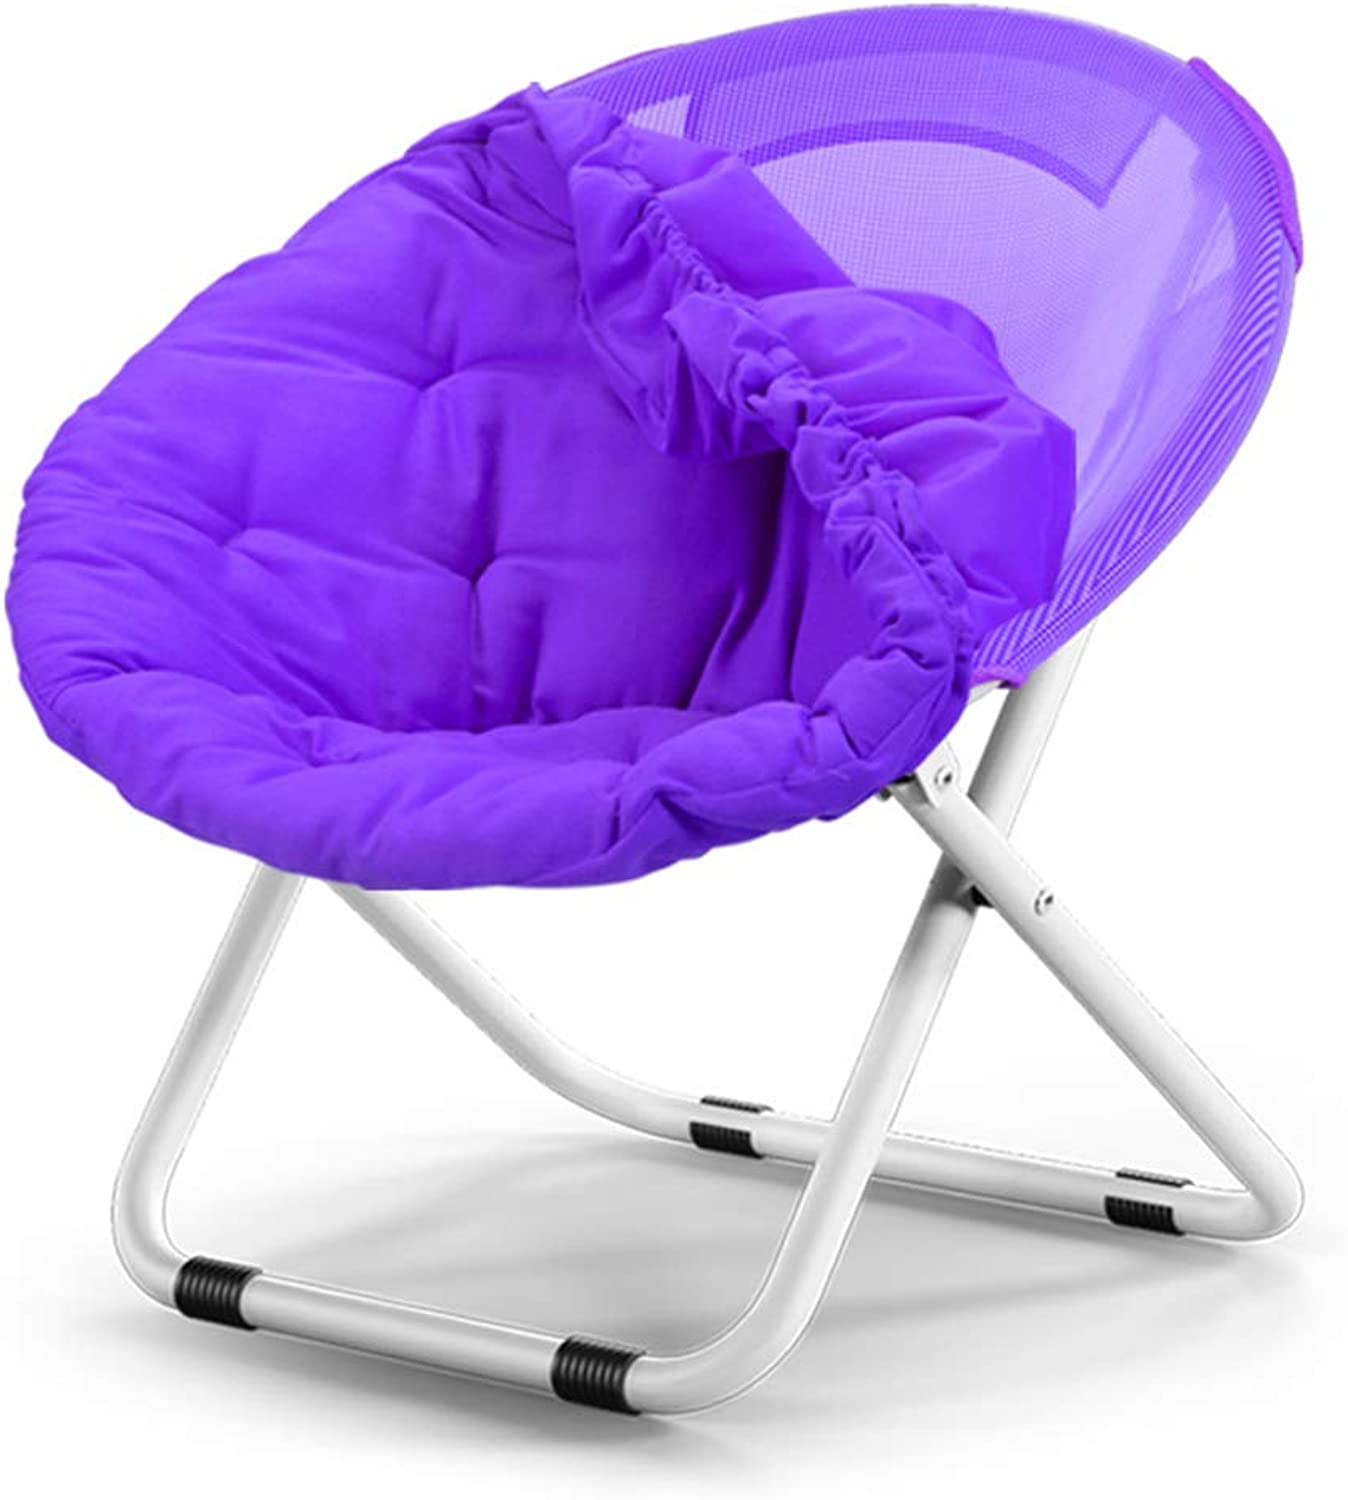 Washable folding chair Adult Moon Chair Sun Chair Lazy Chair Sun Lounger folding chair Round Chair Sofa Chair Solid color Home folding chair Lazy Couch   (color   Purple)